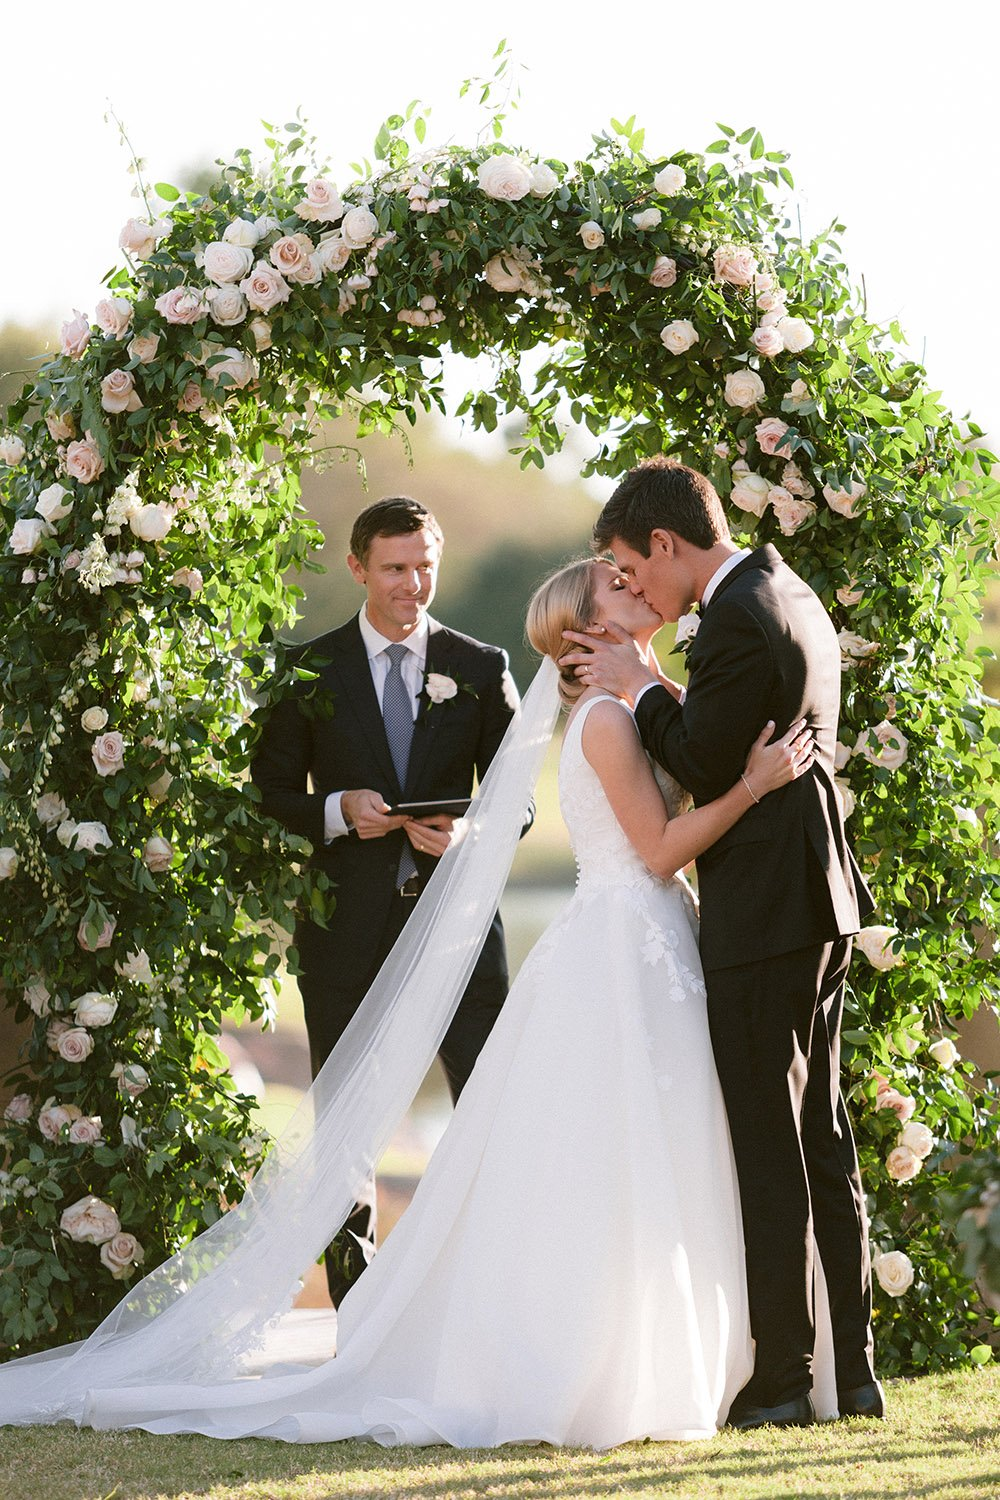 Bride, in long white gown and flowing veil, kisses the groom, in a black tuxedo, underneath a greenery and rose covered arbor on the lawn at Royal Oaks Country Club in Houston.